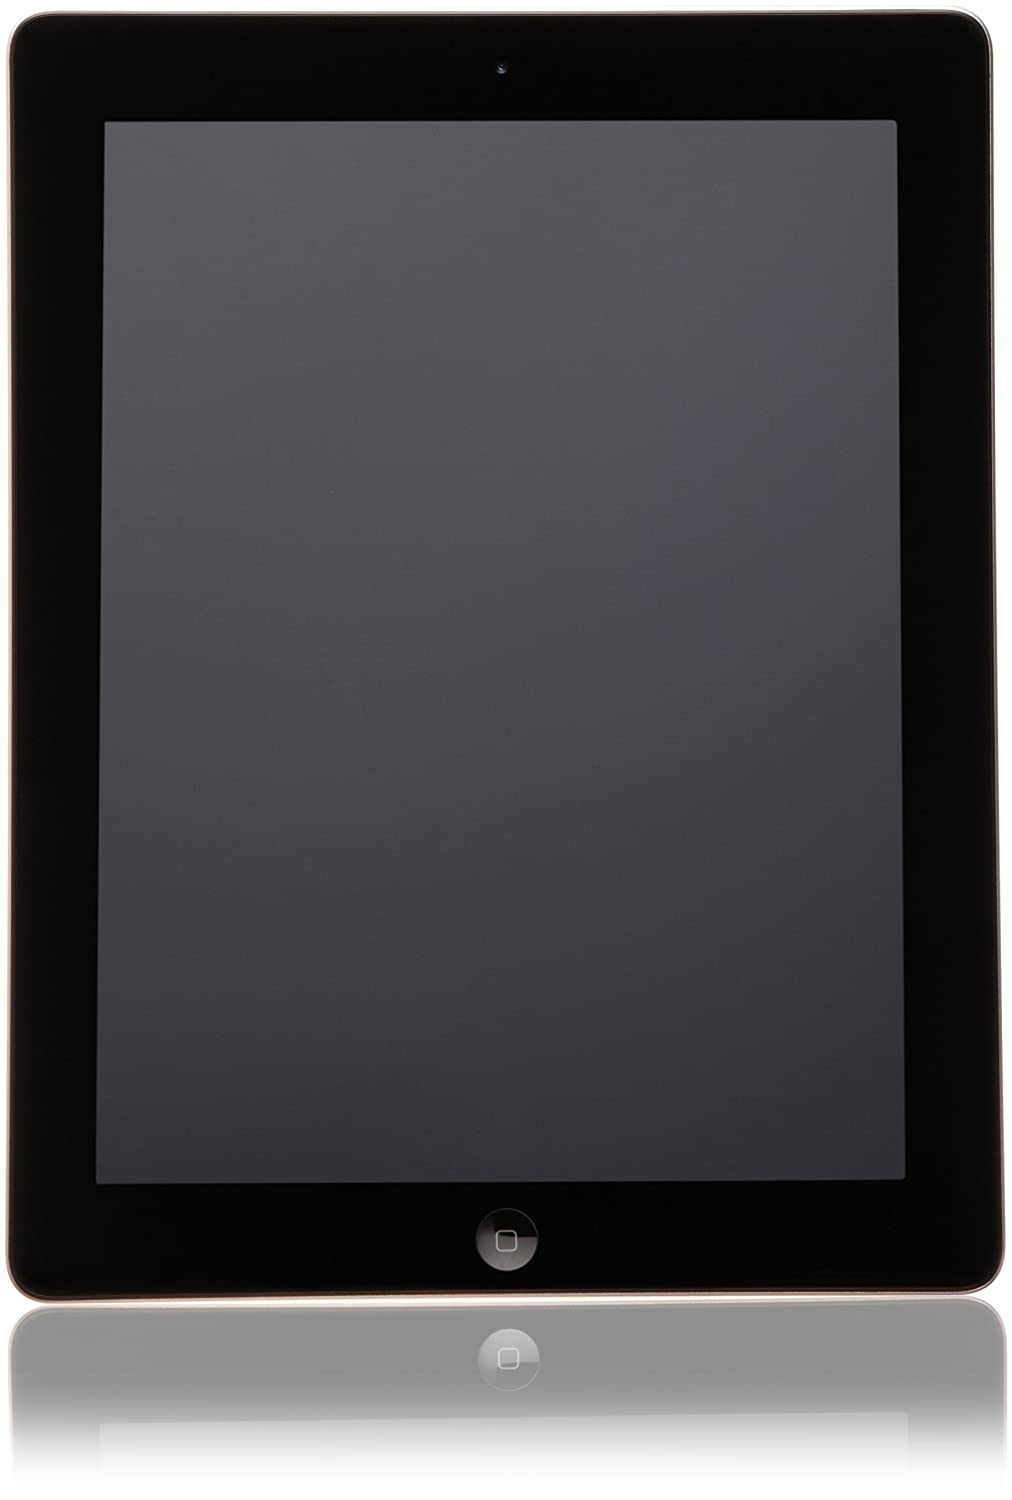 Apple iPad with Wi-Fi + Cellular 16GB - Black - AT&T (3rd generation)